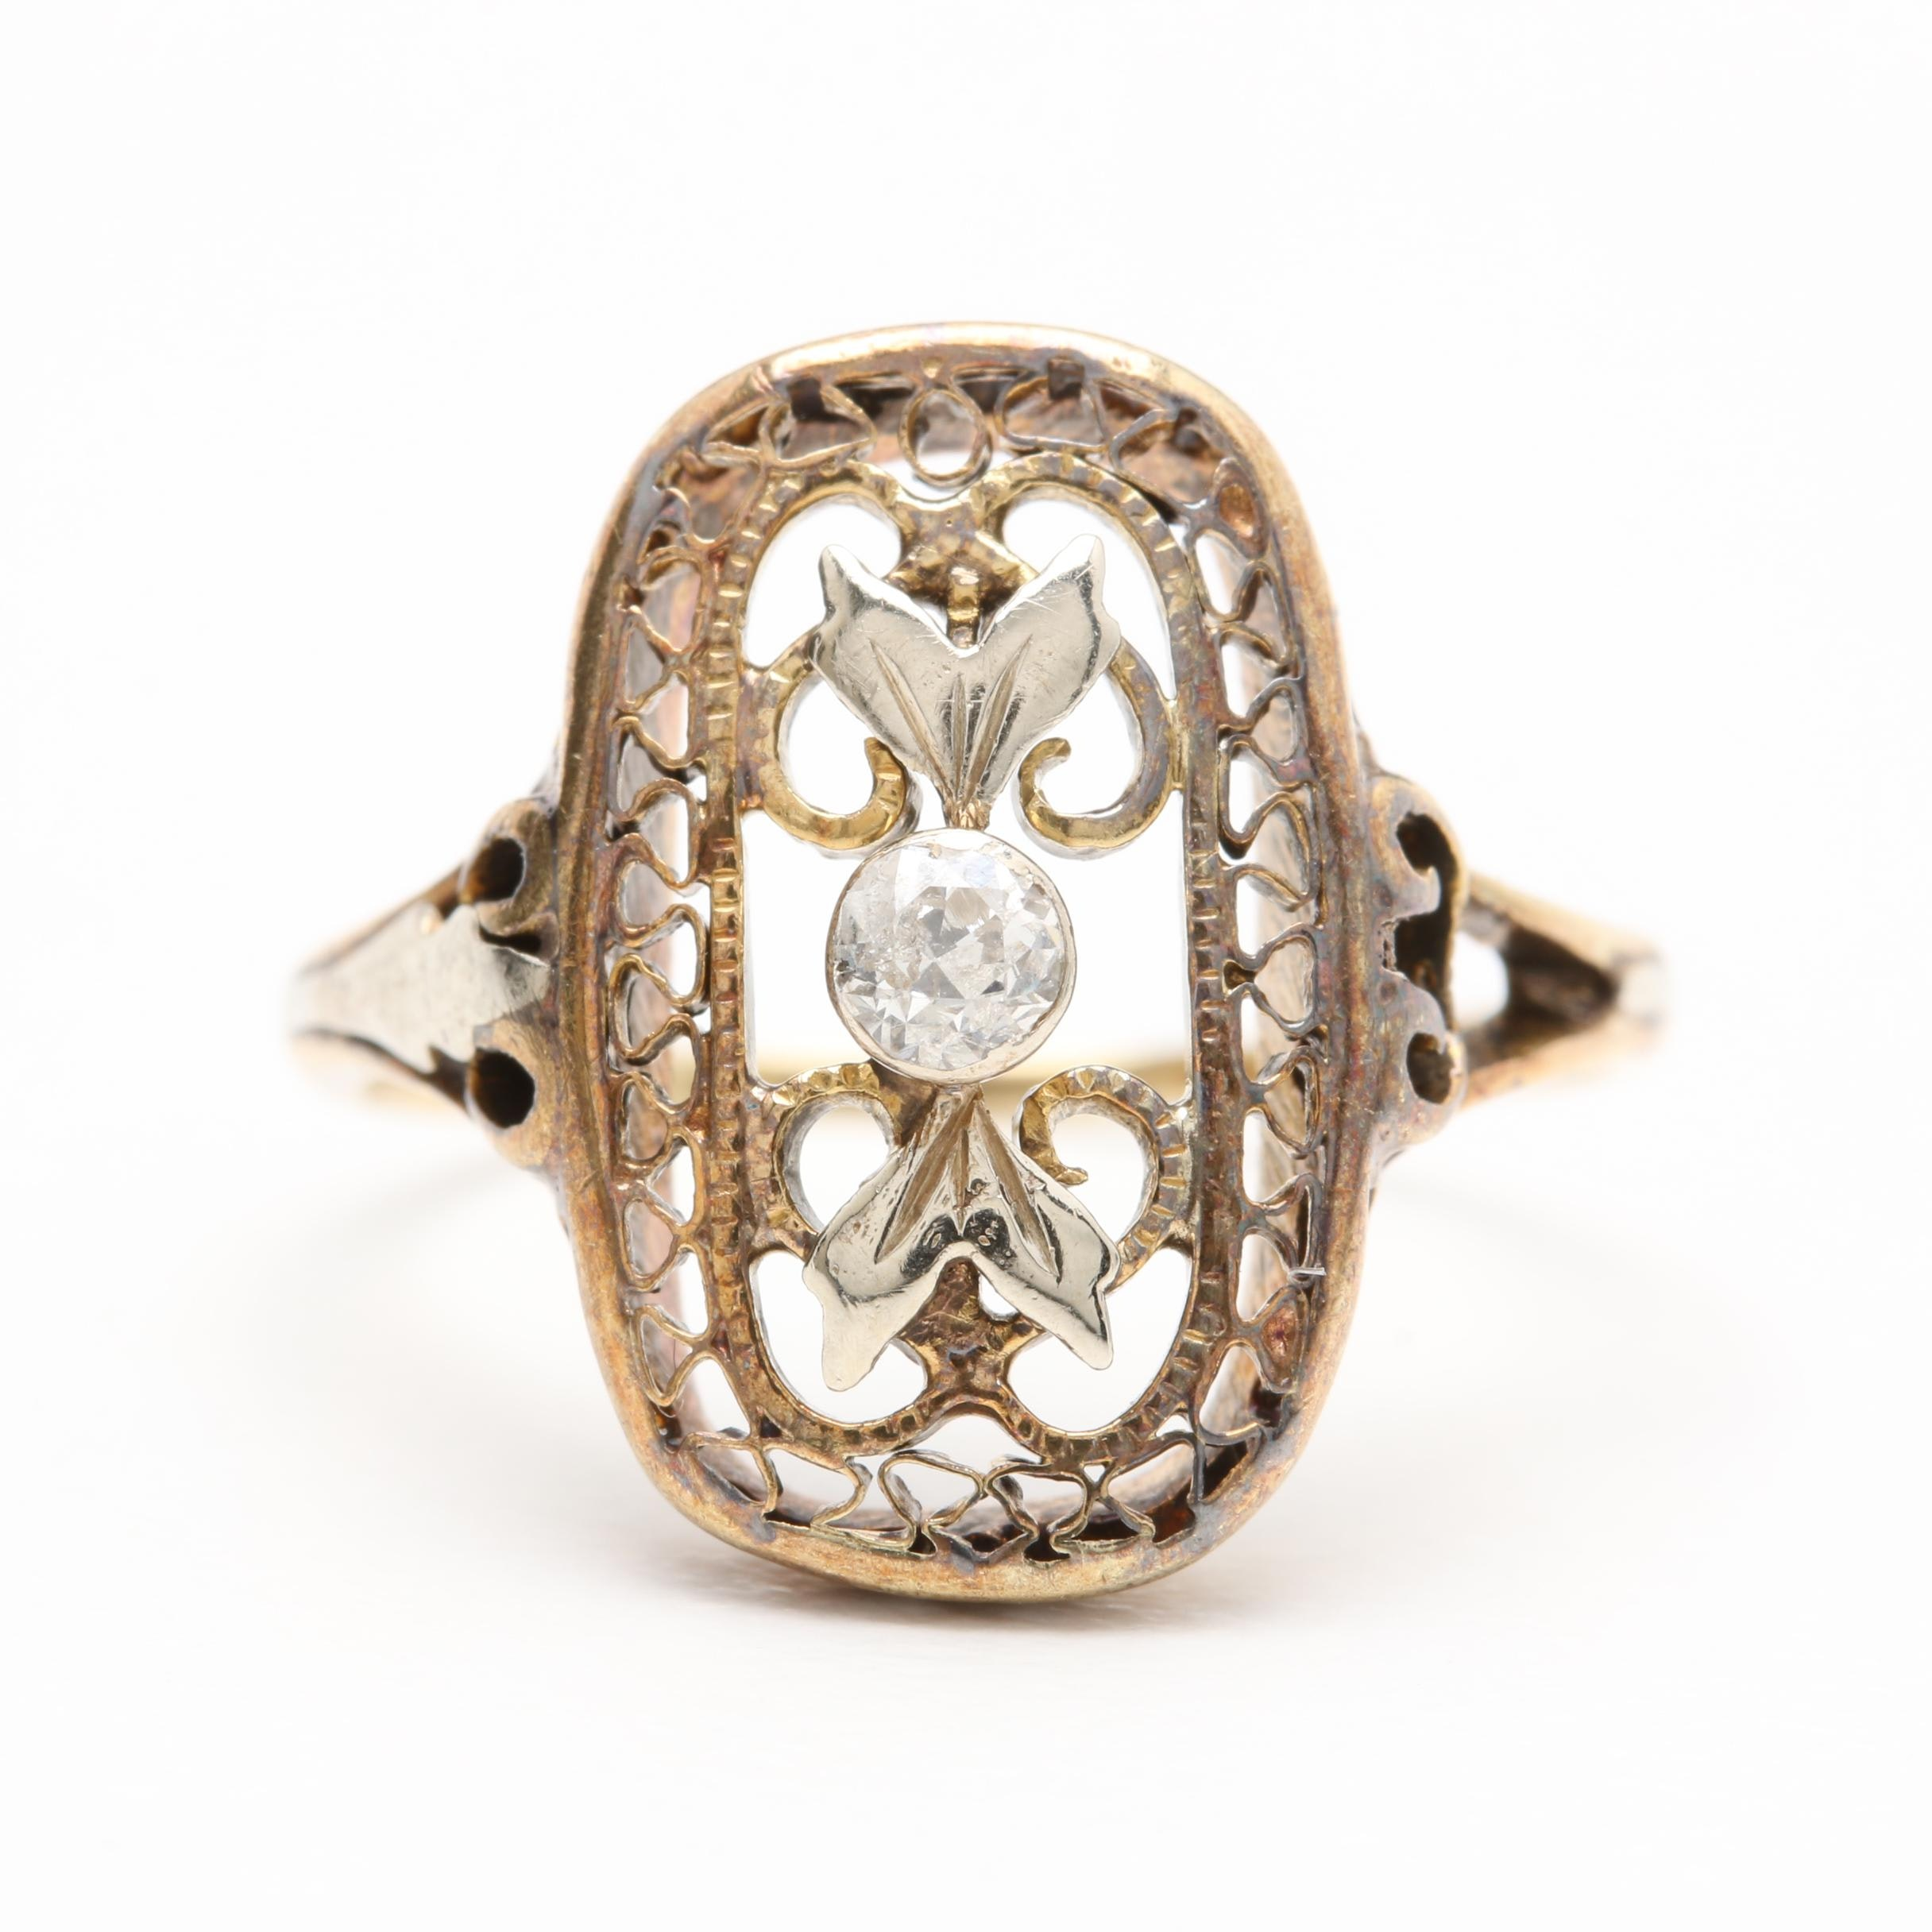 Edwardian 14K Yellow Gold Diamond Ring With White Gold Accents